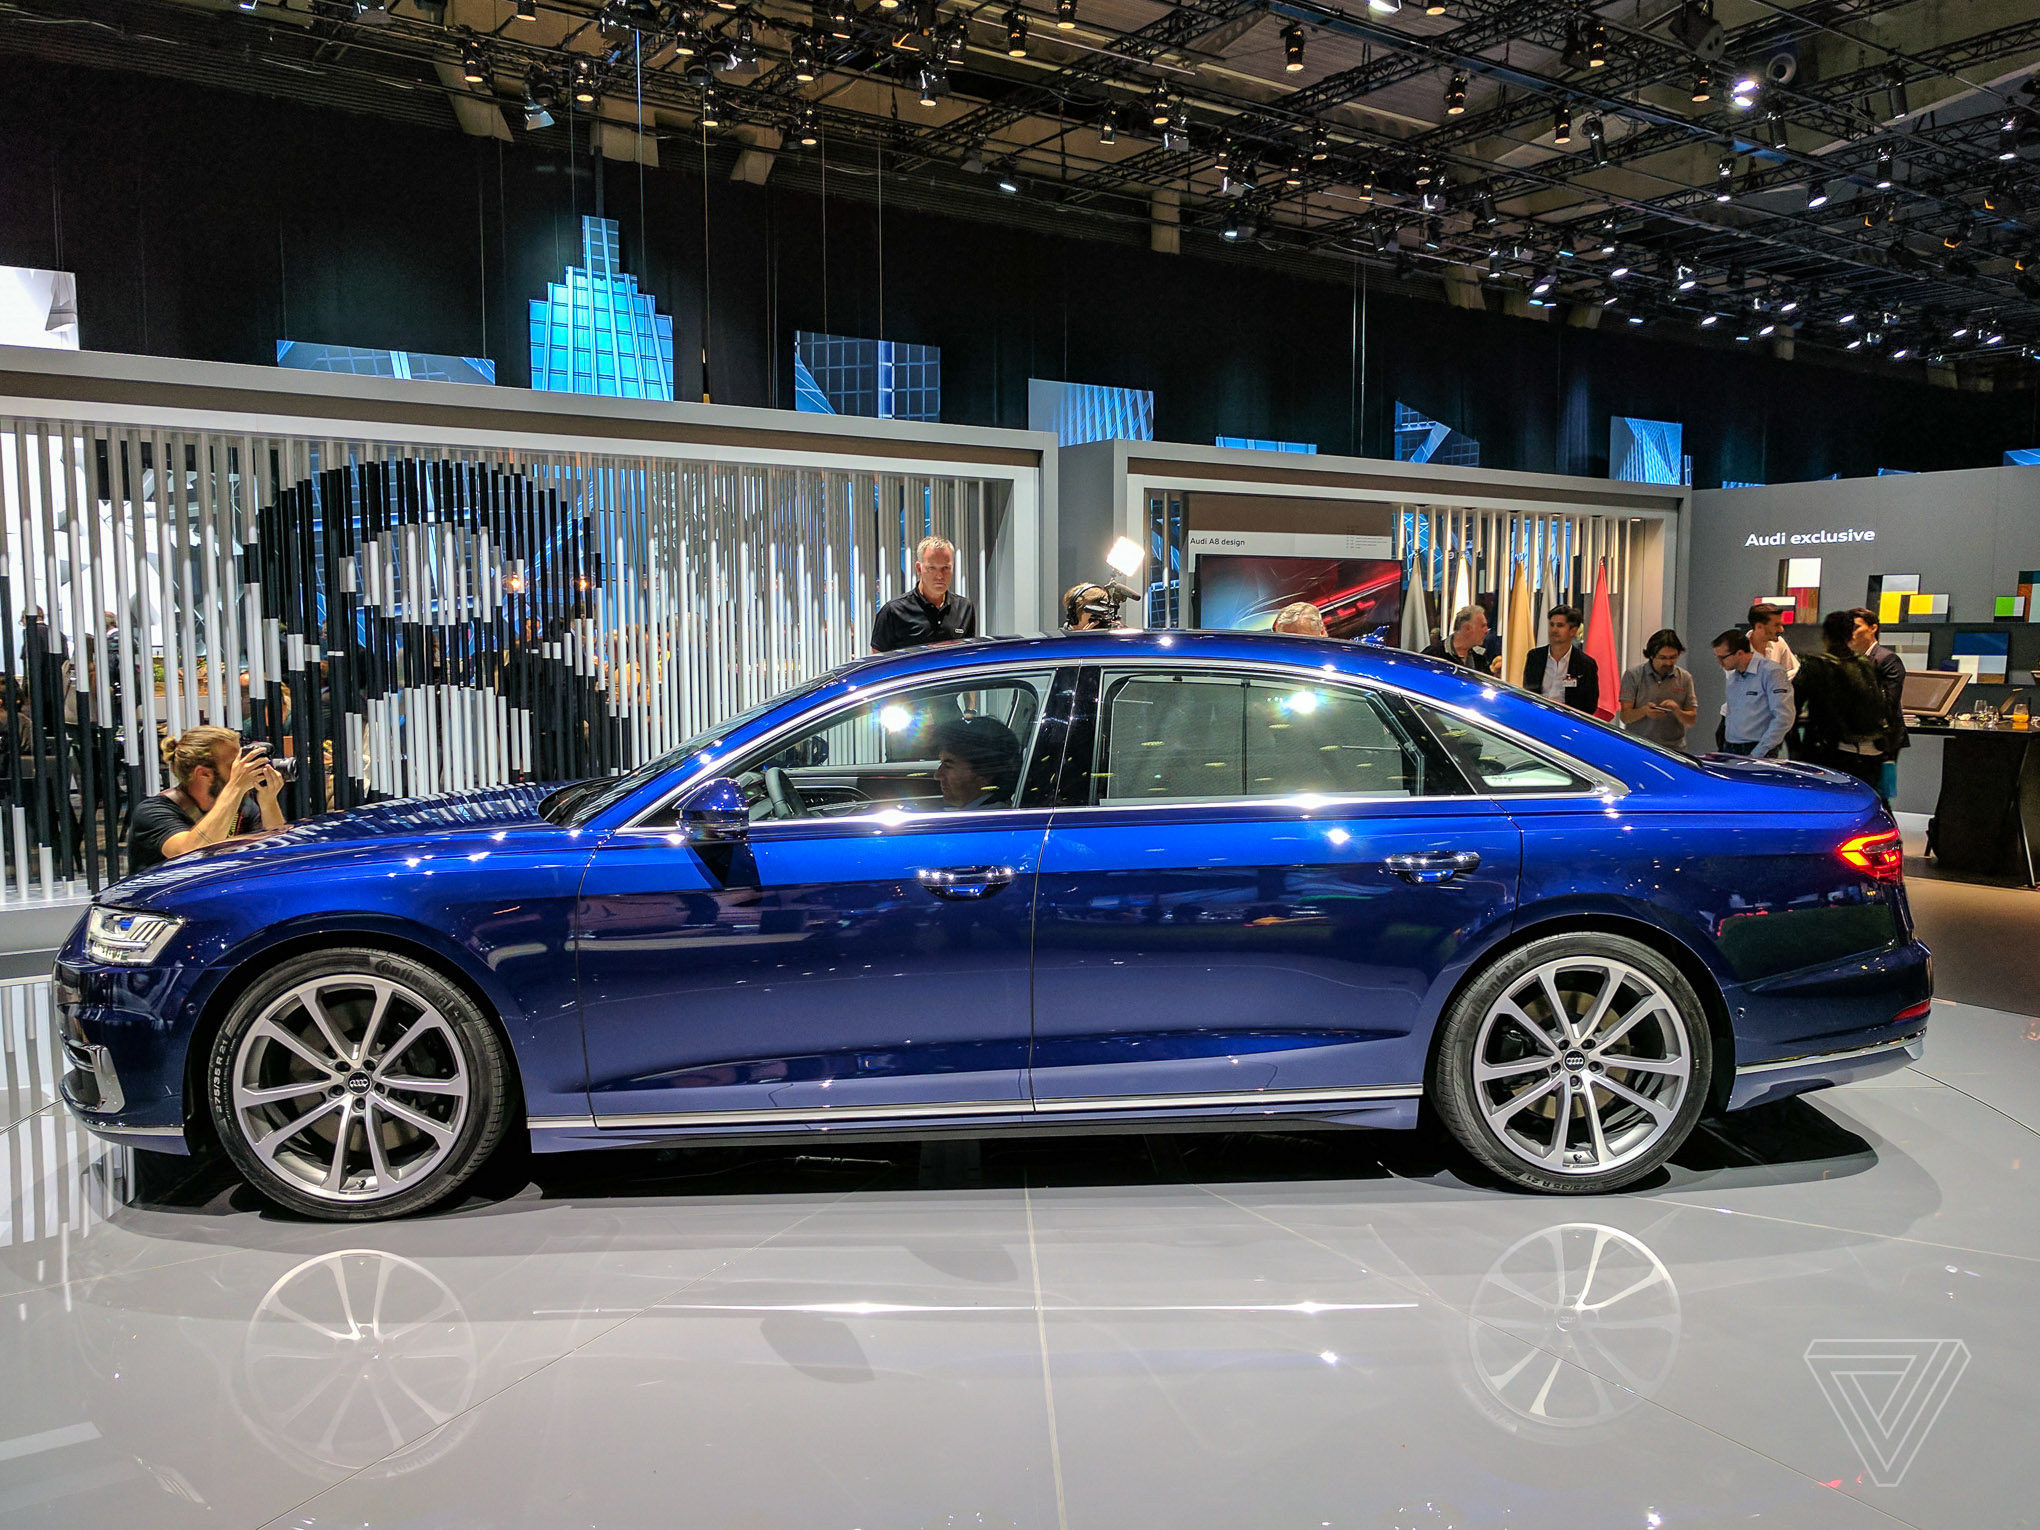 audi s a8 is a declaration of war on buttons but now the battle